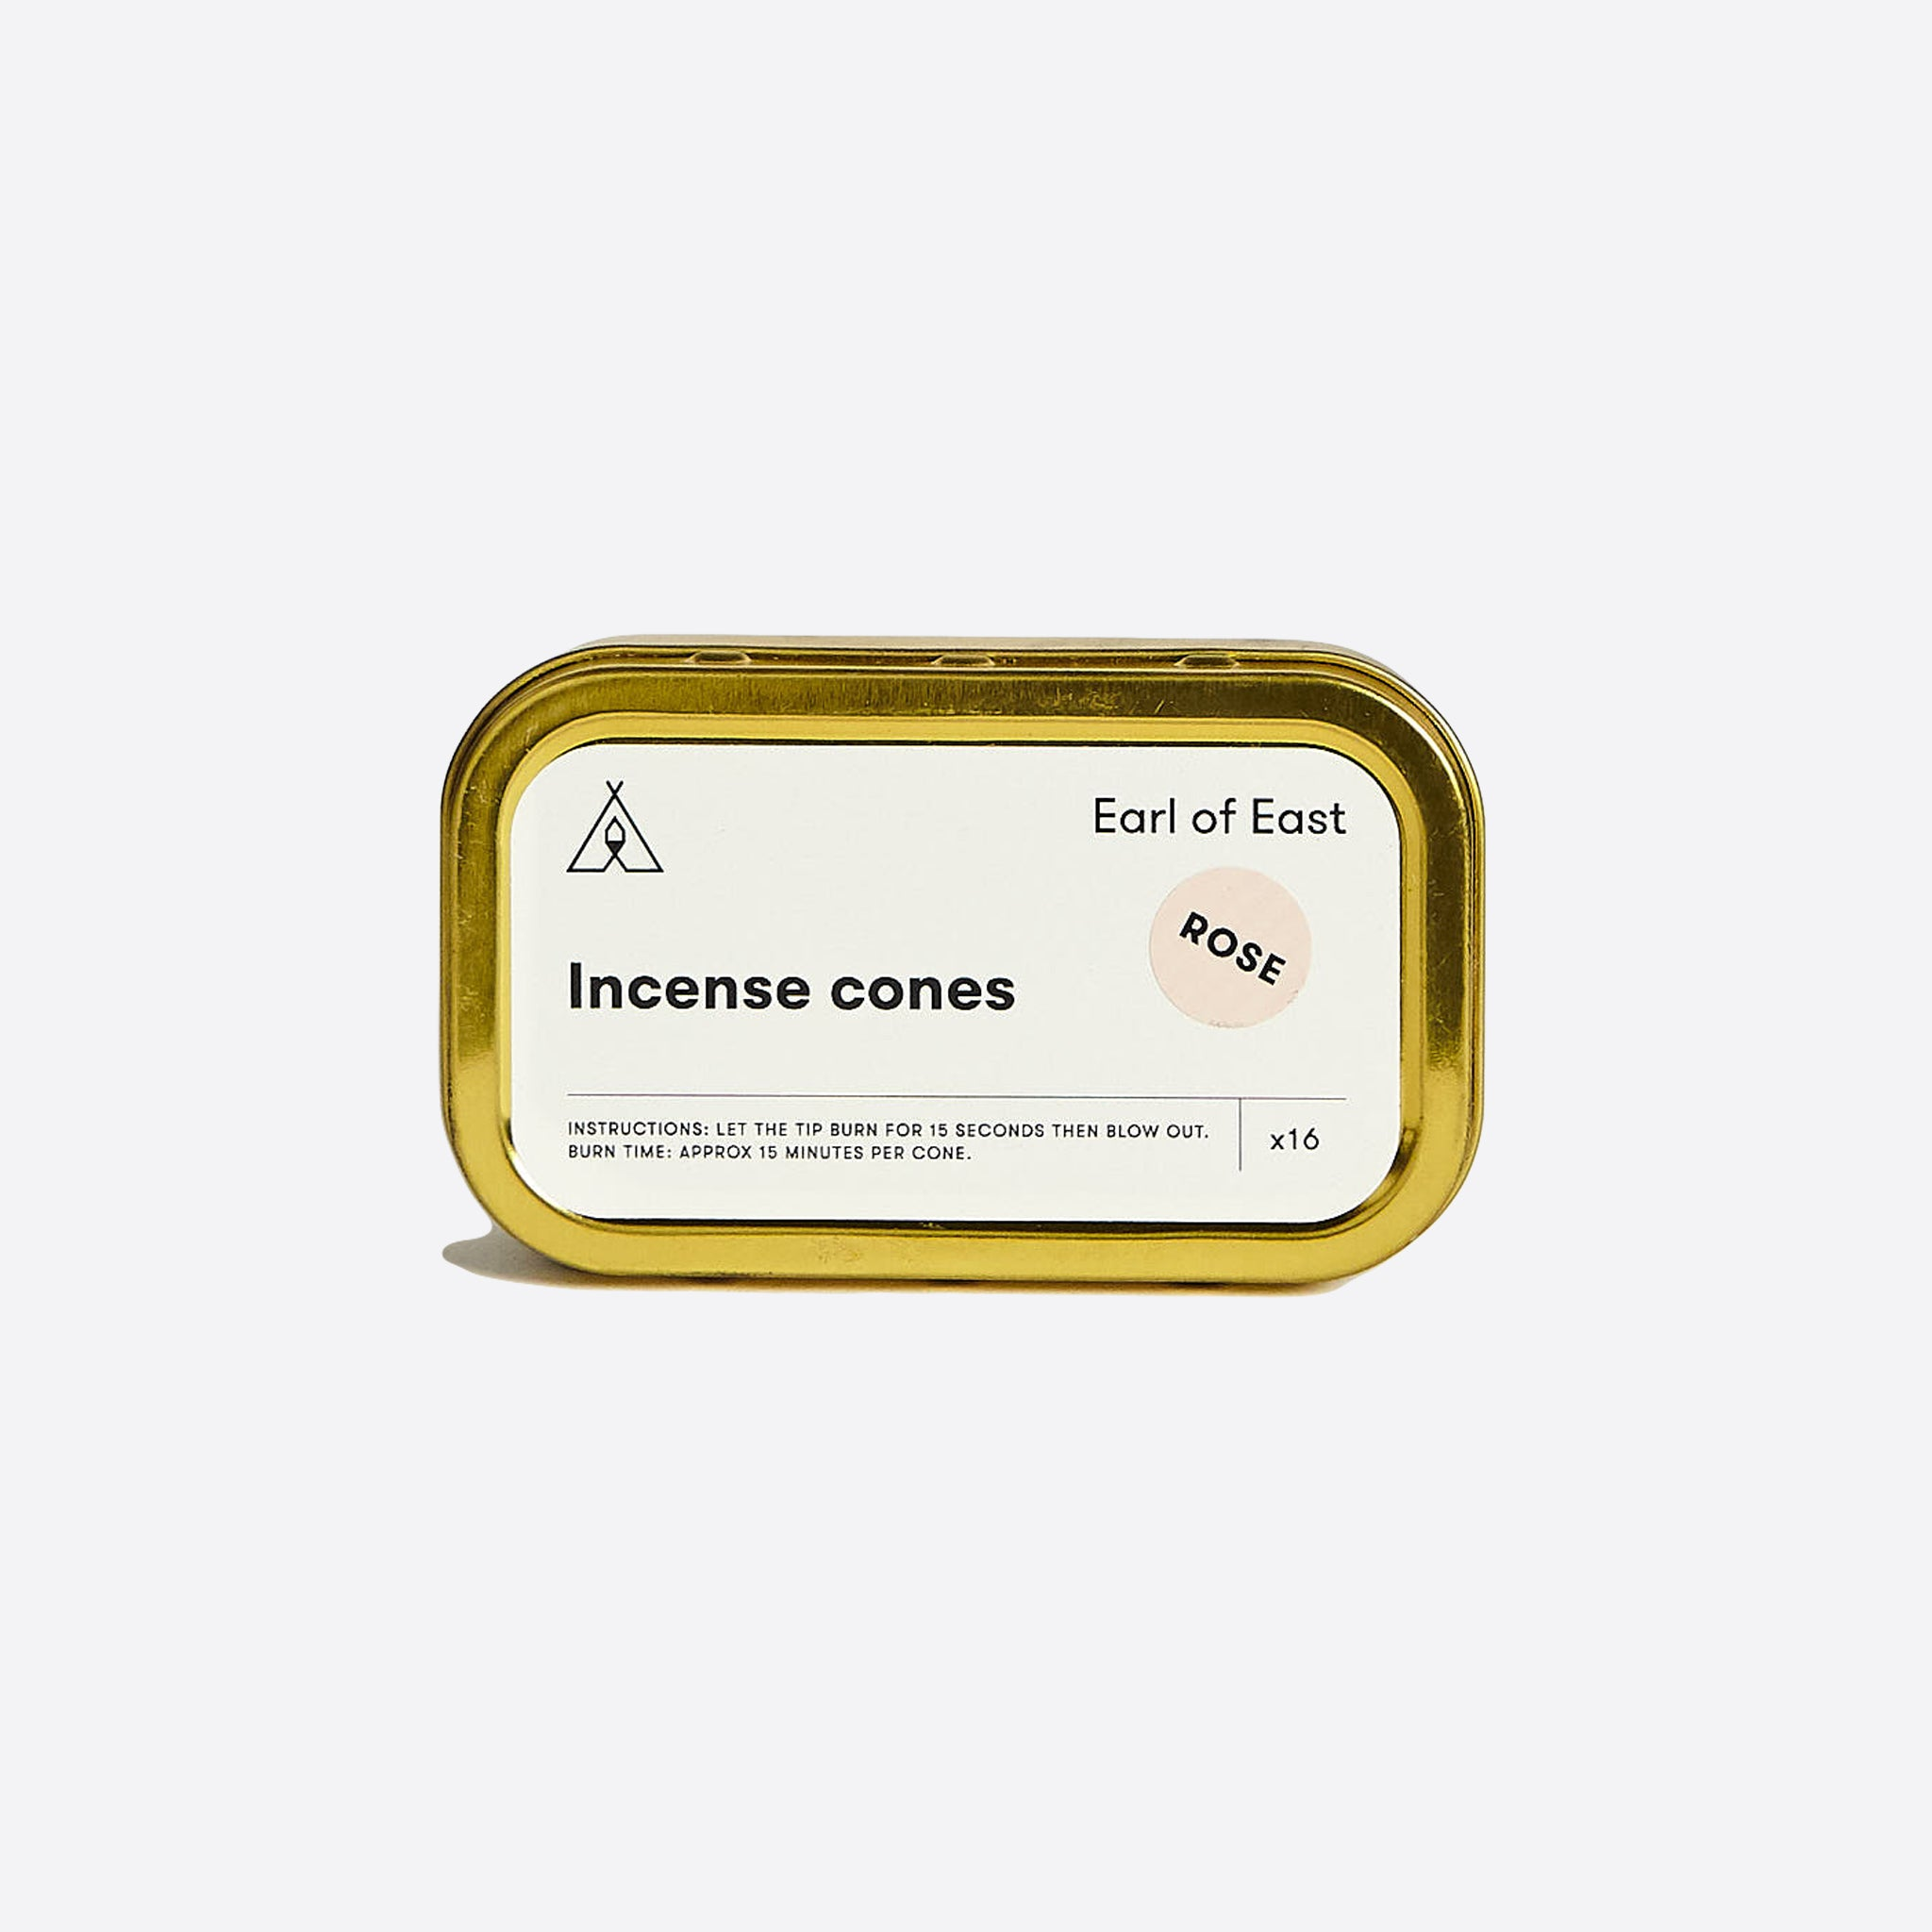 Earl of East Incense Cones Rose